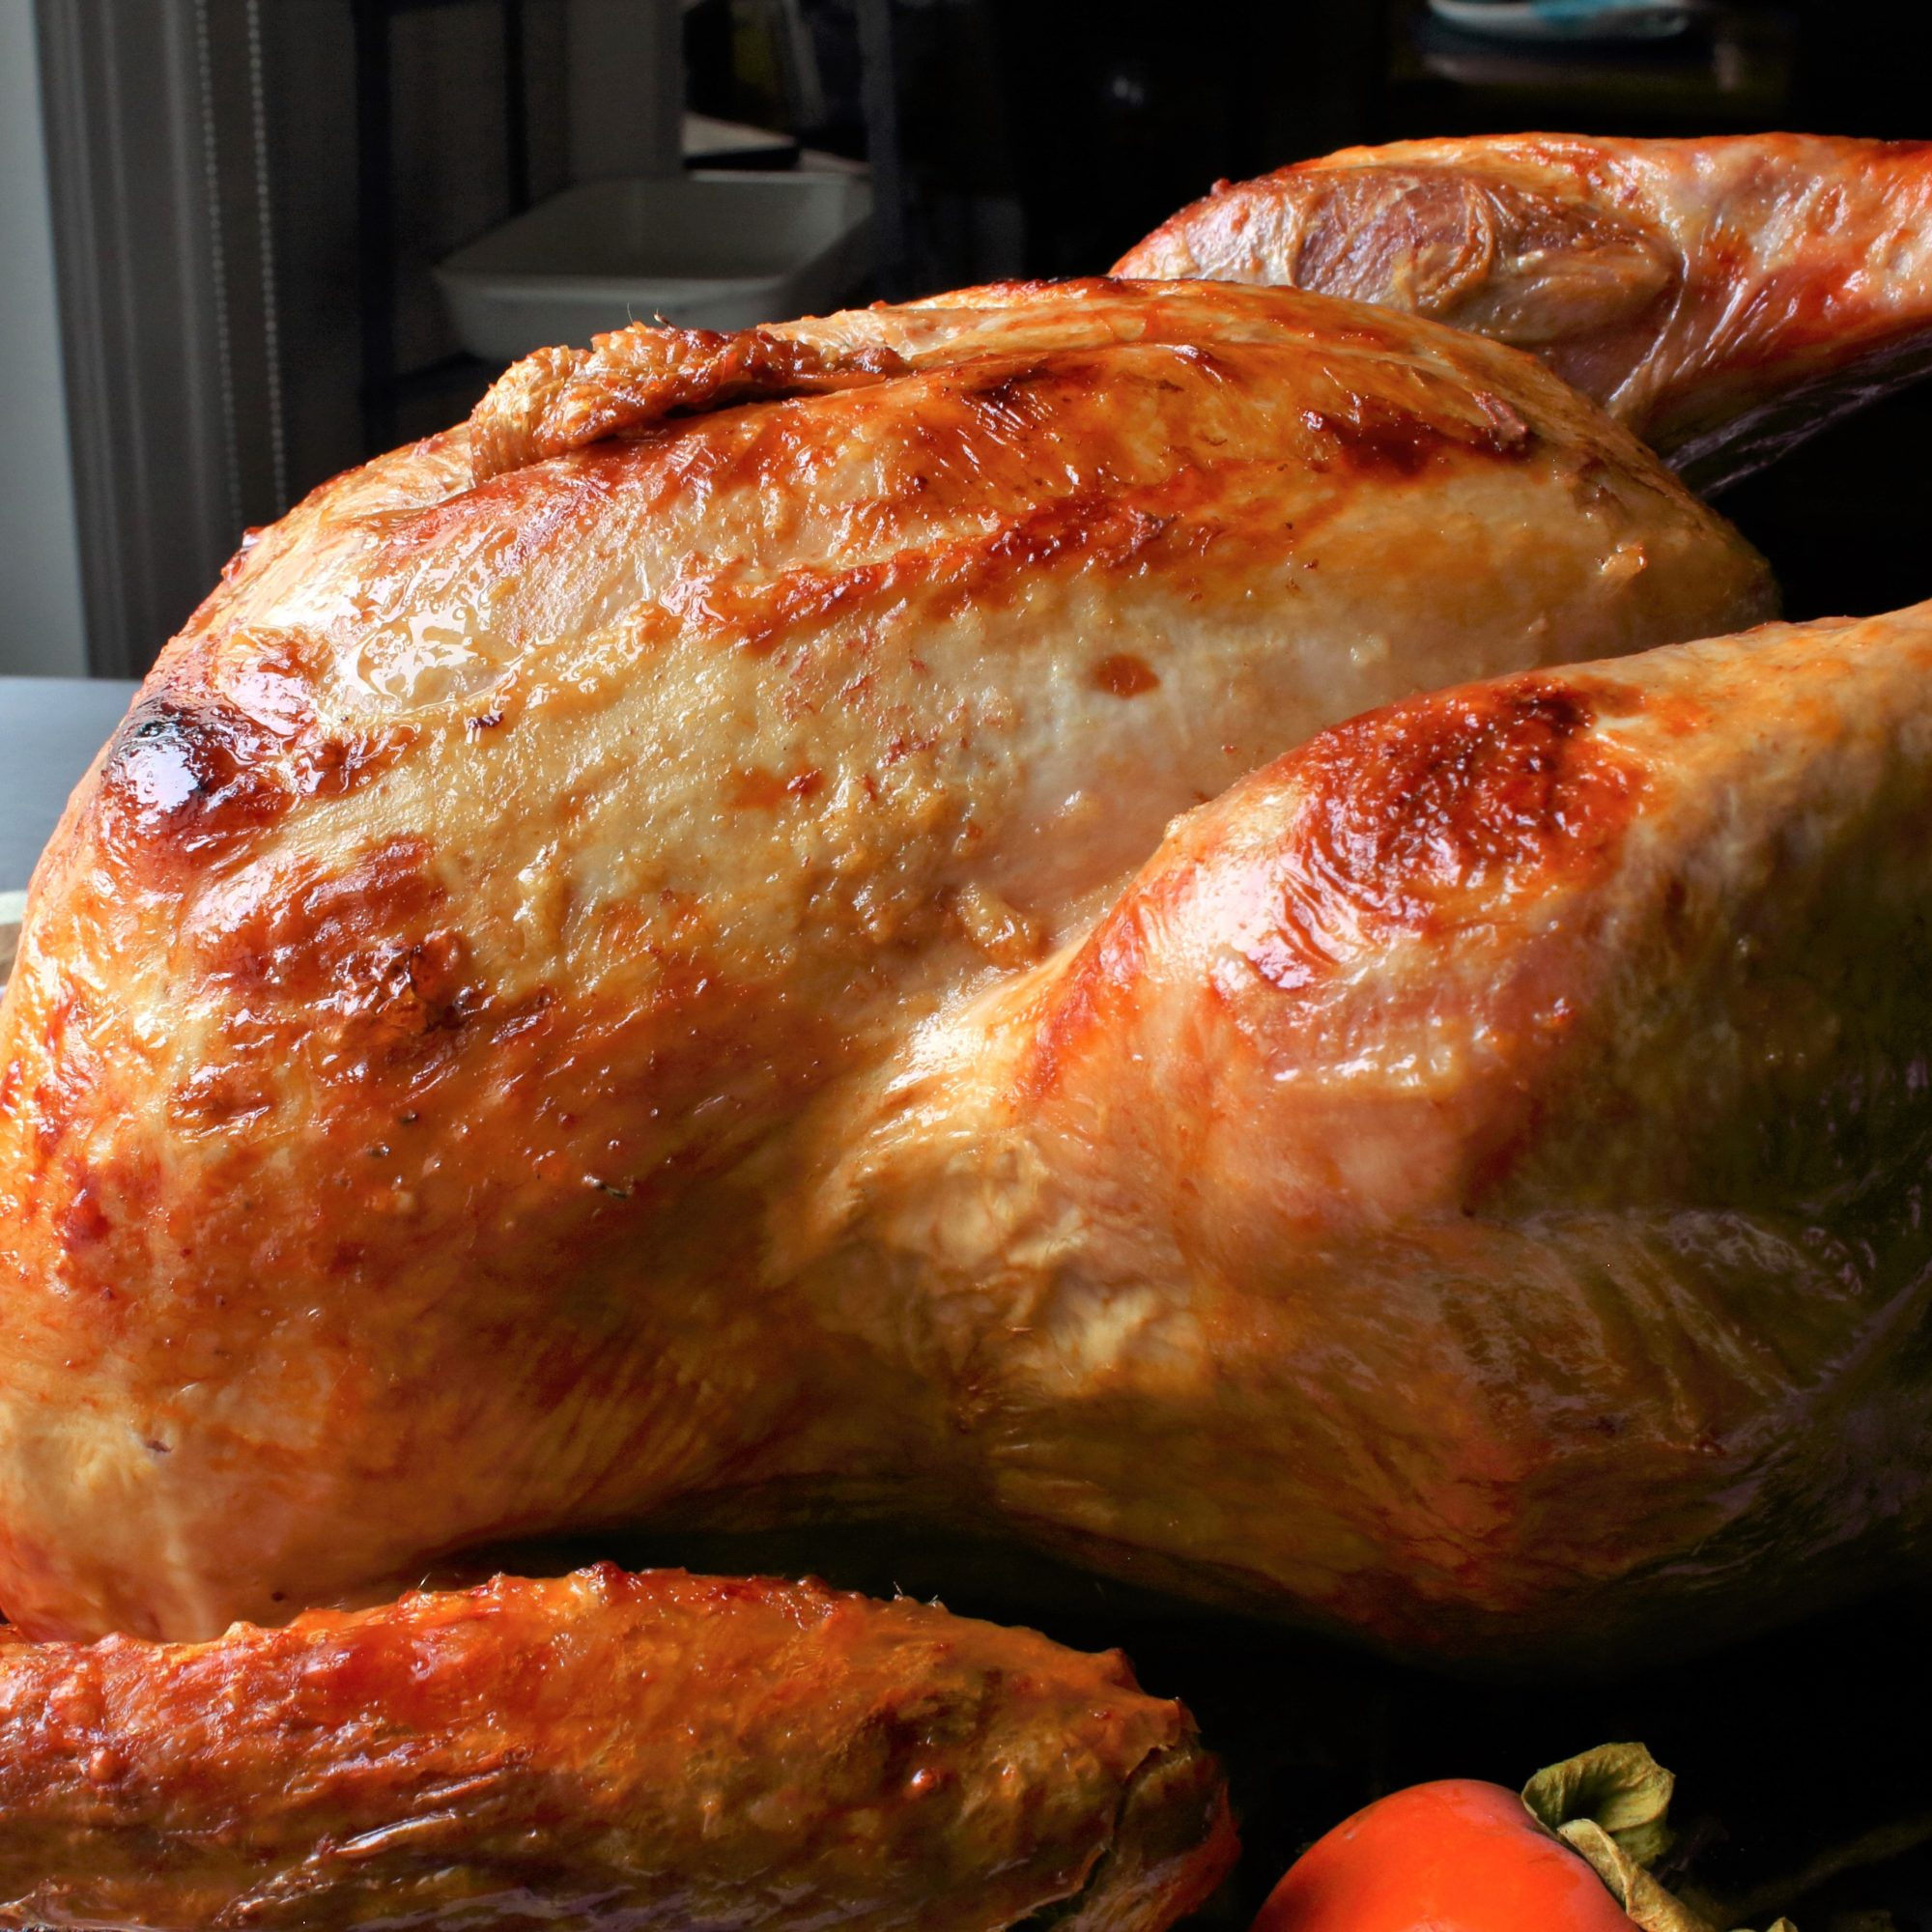 a roast turkey on a platter with fresh persimmons